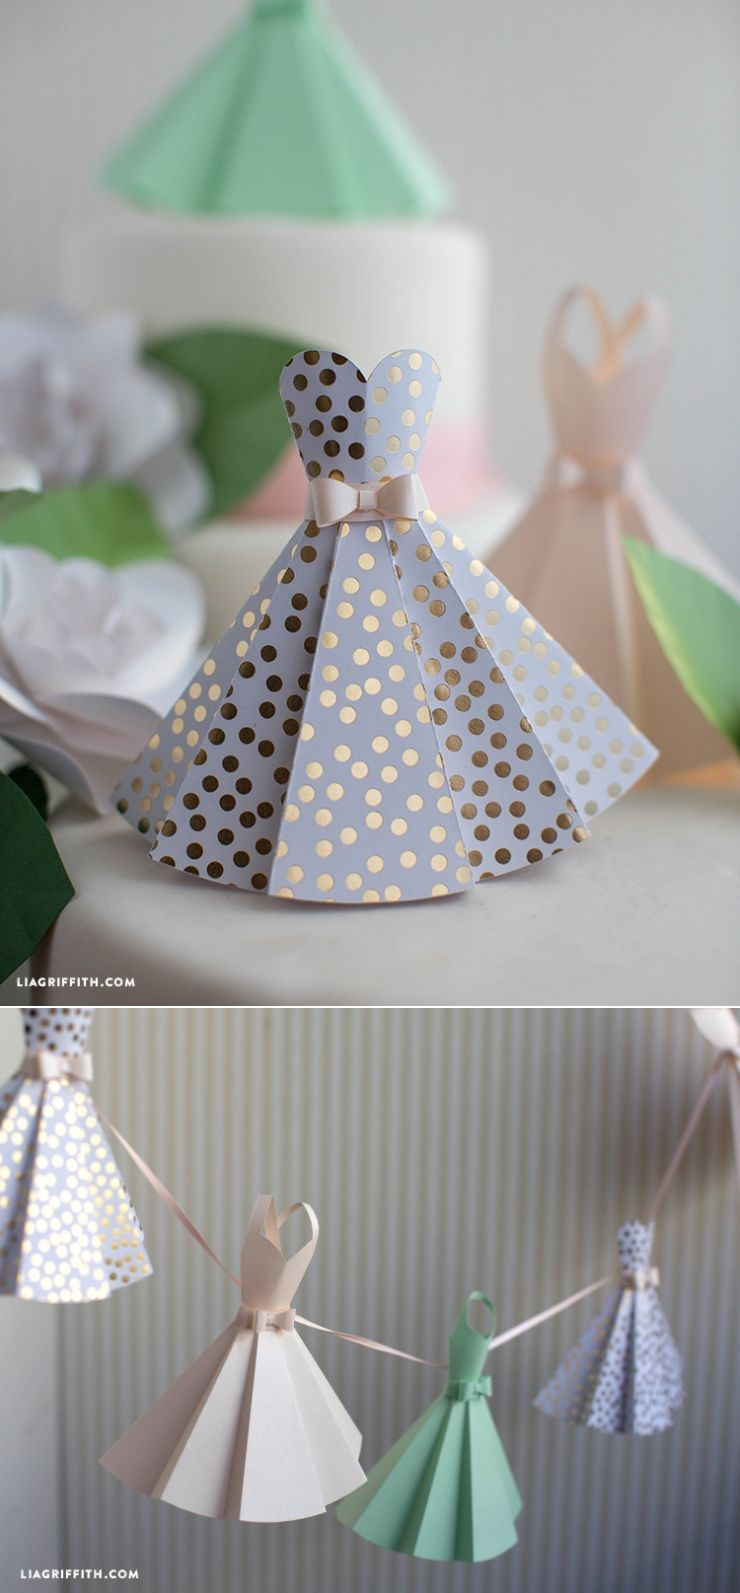 Paper Dress DIY Wedding Decorations | Origami, Craft and ... - photo#29